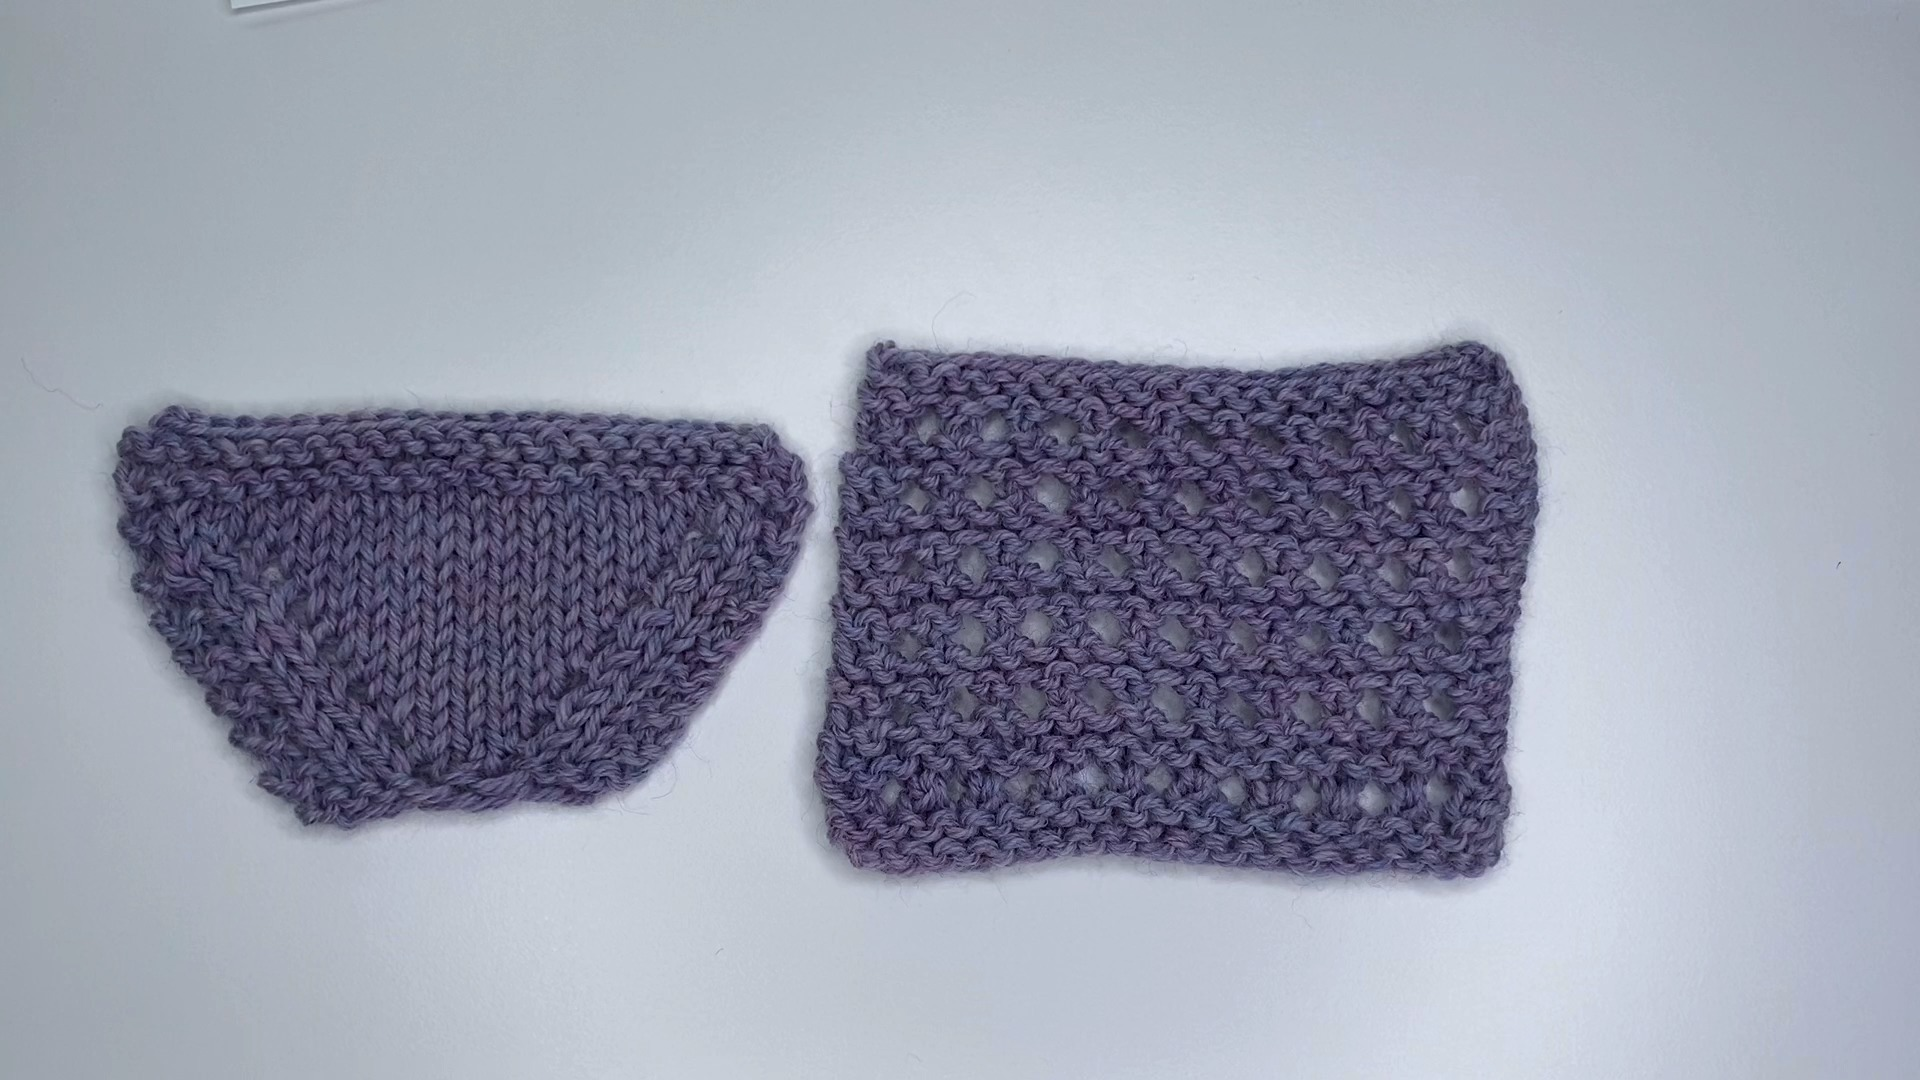 14-Day Learn to Knit Series: Day 8